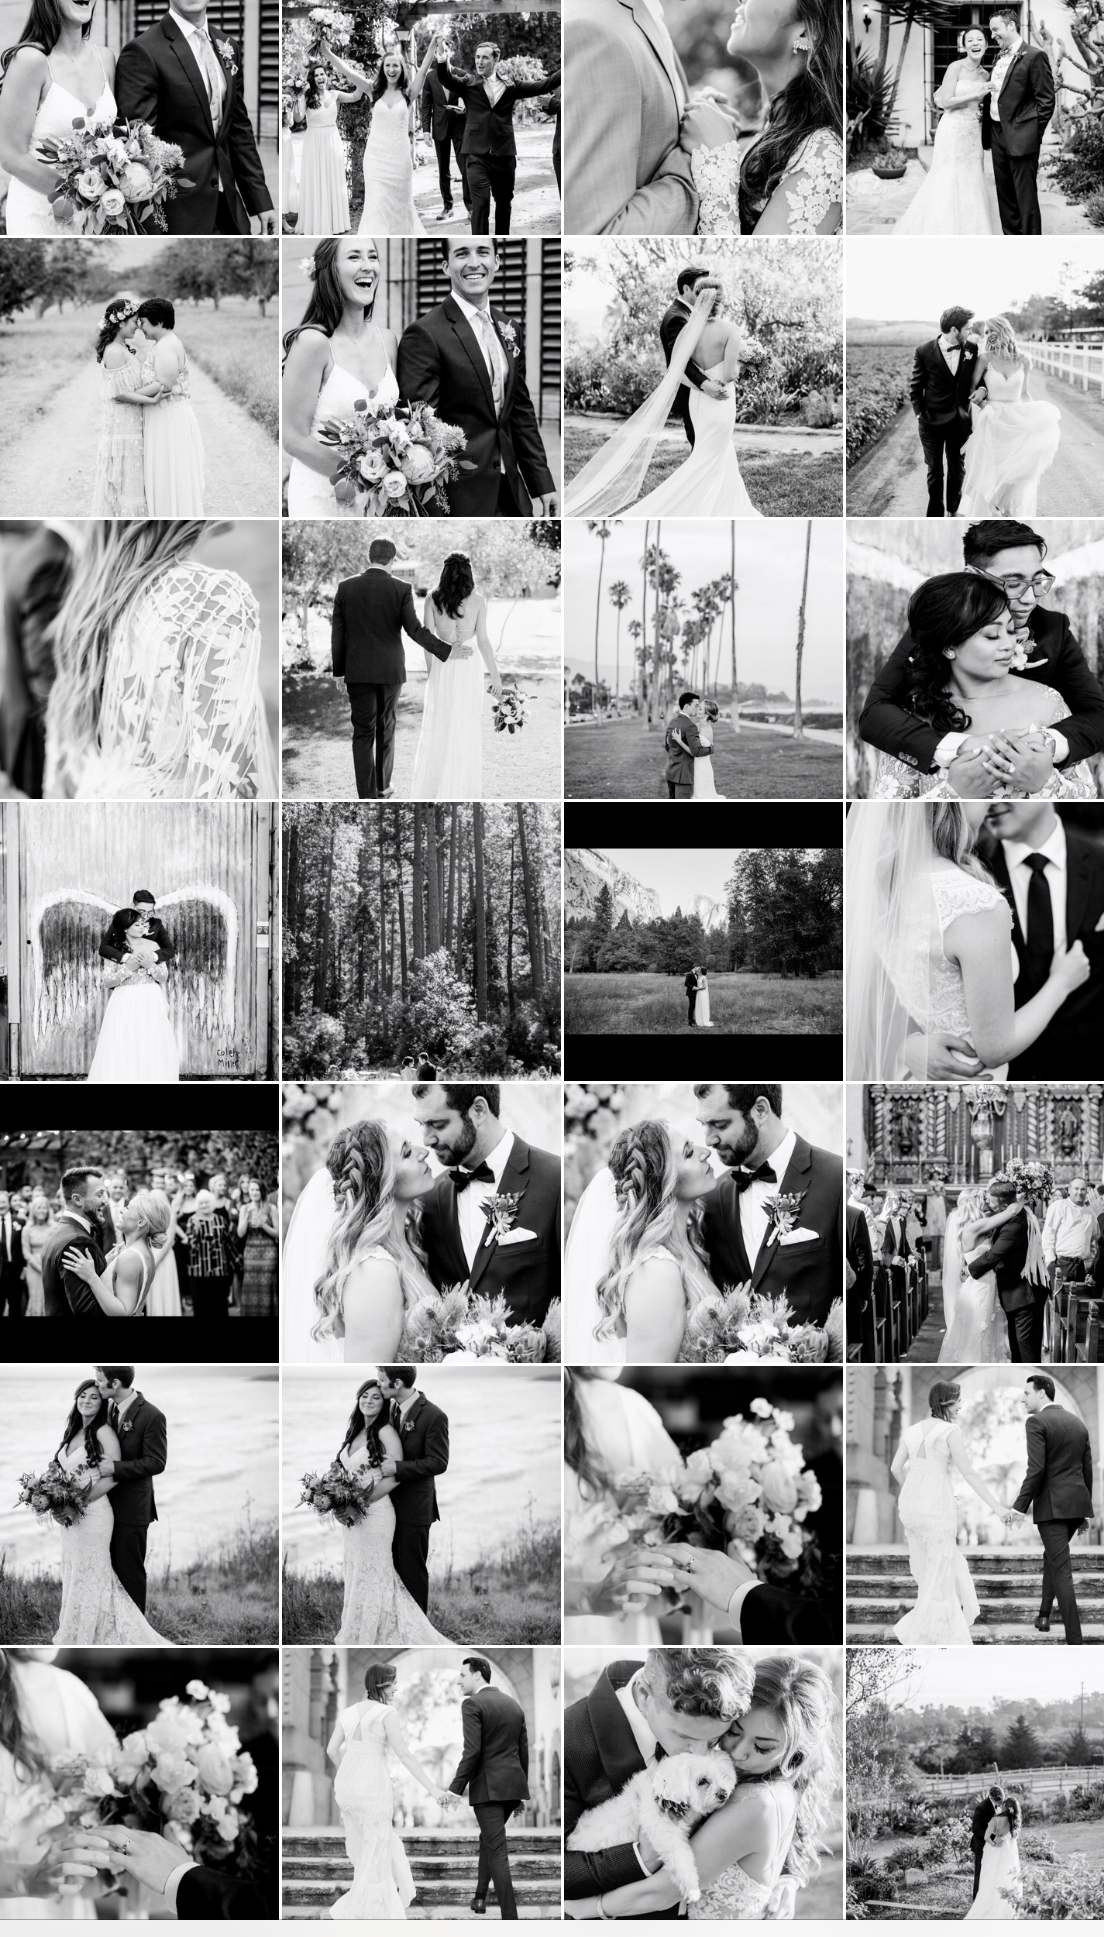 Best of Black and White Wedding Images One